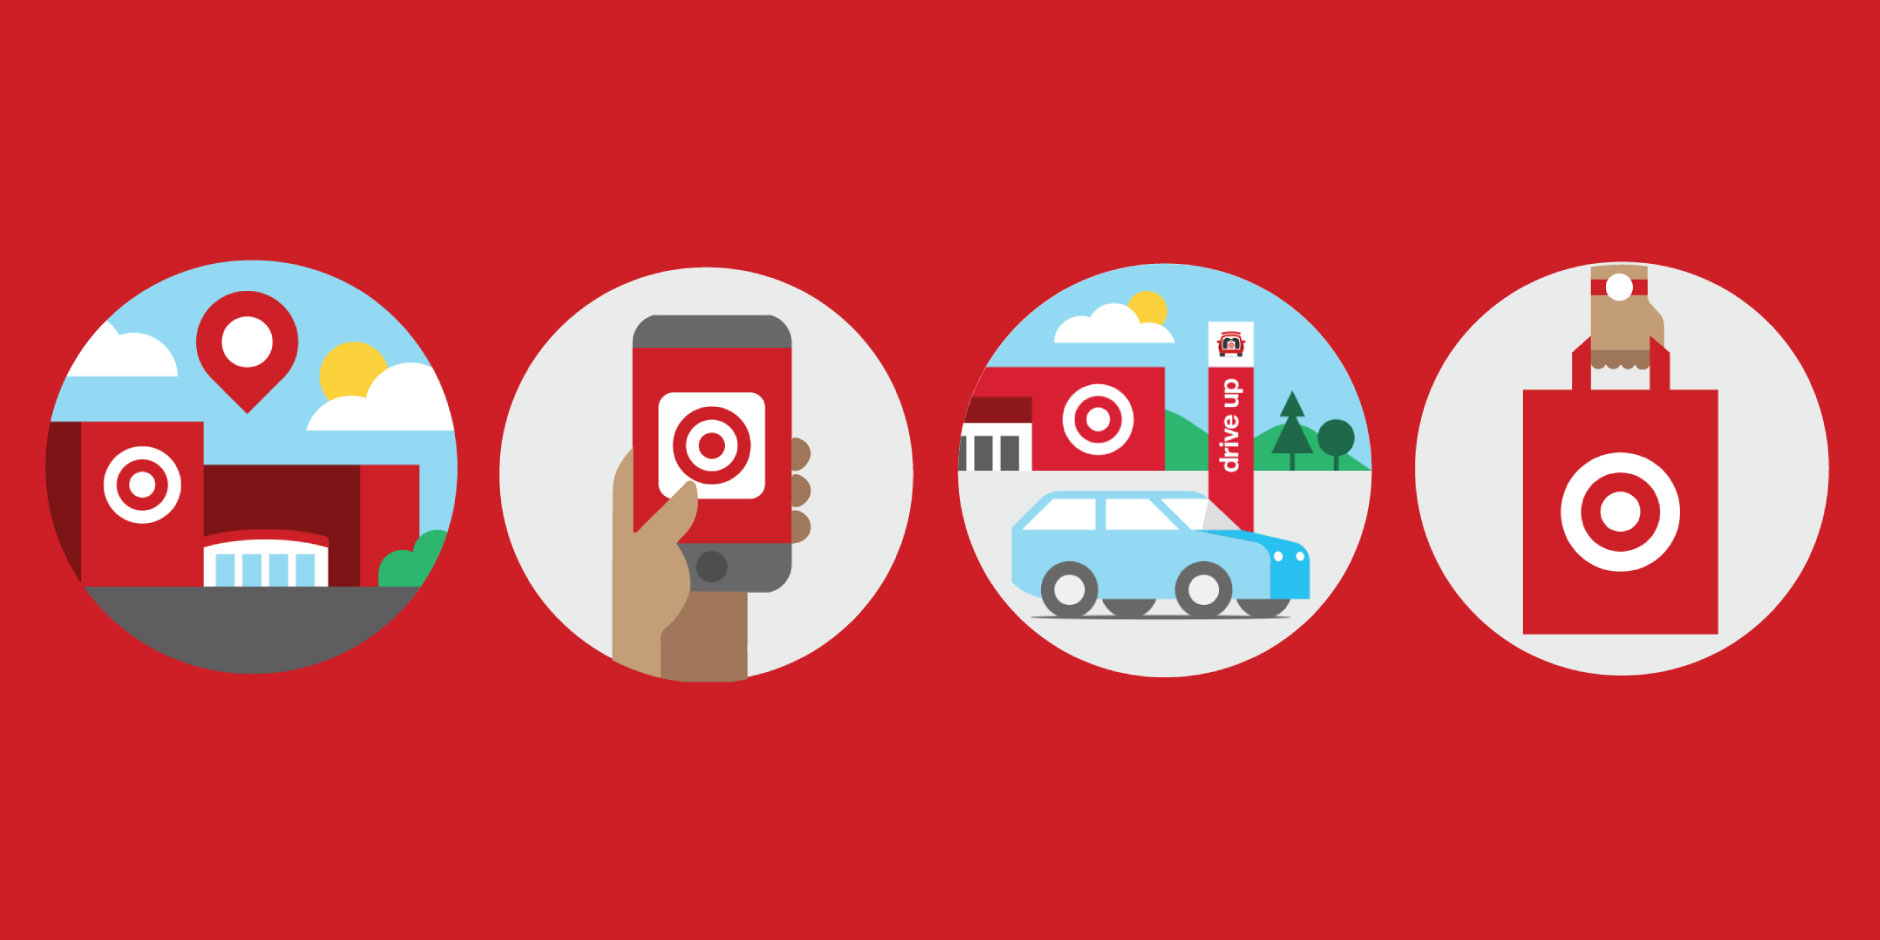 An illustration of four circles depicting a store, a hand with a phone, a car at the Drive Up and a hand holding a bag, all against a red background